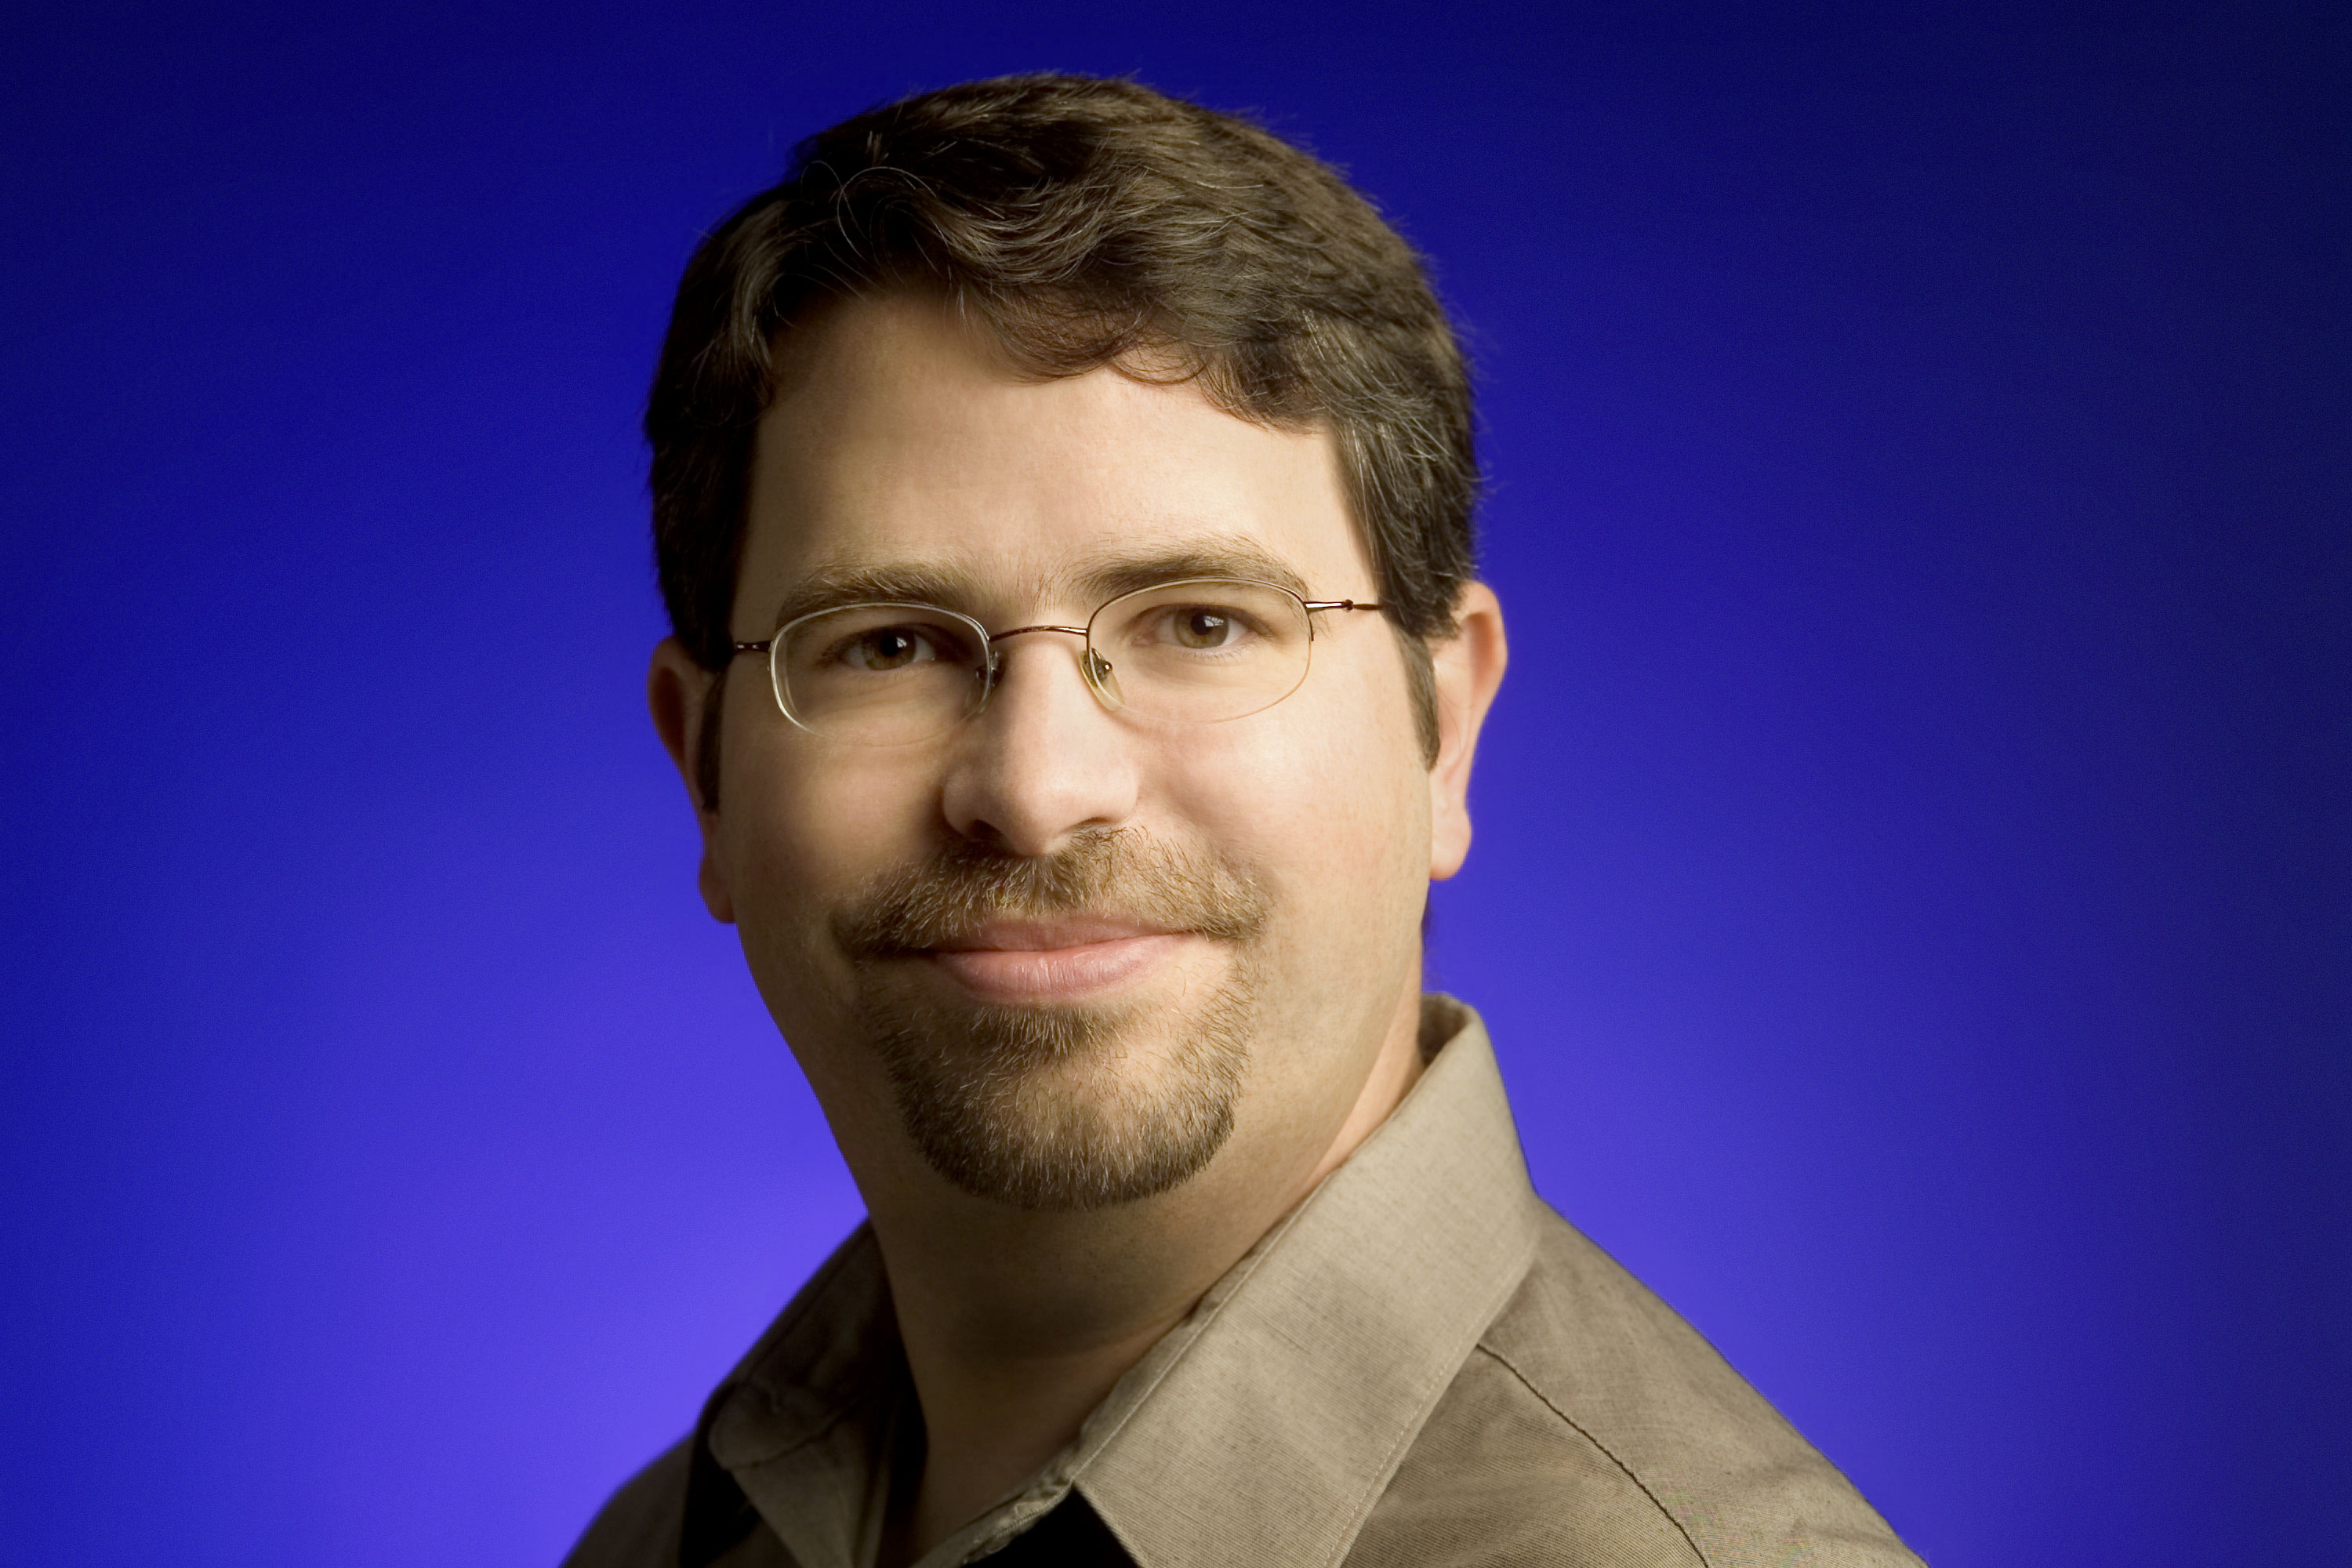 Google's Matt Cutts recently said the freshness factor isn't necessarily relevant for all kinds of content marketing.